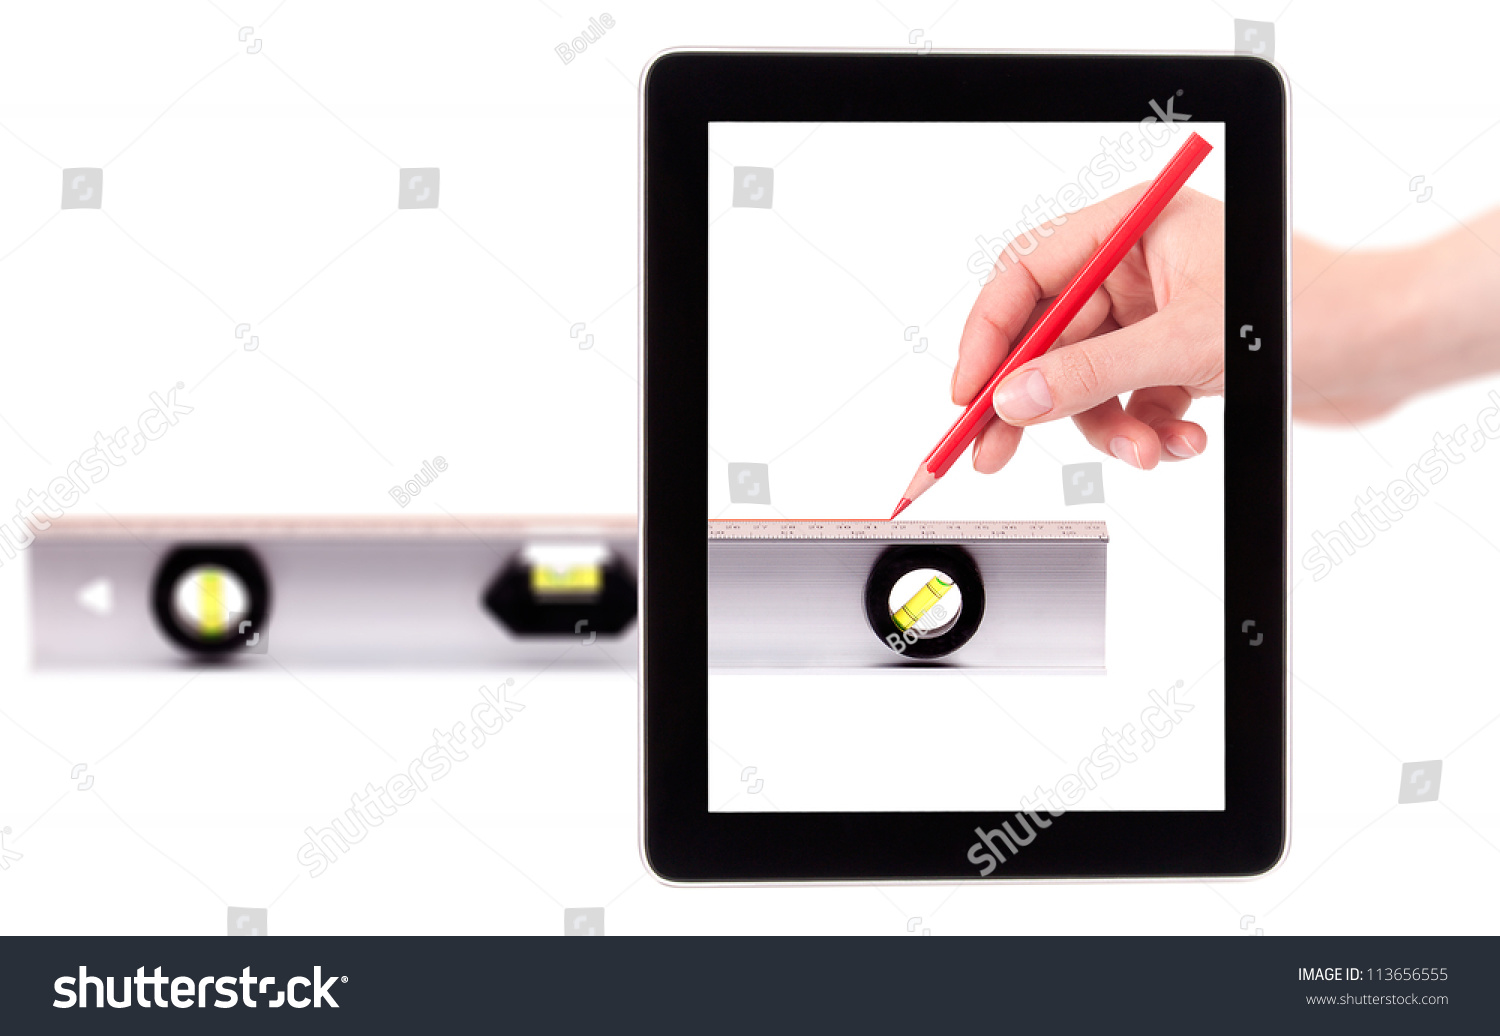 Drawing Smooth Lines In Photo With Tablet : Hand drawing red line using a spirit level on digital